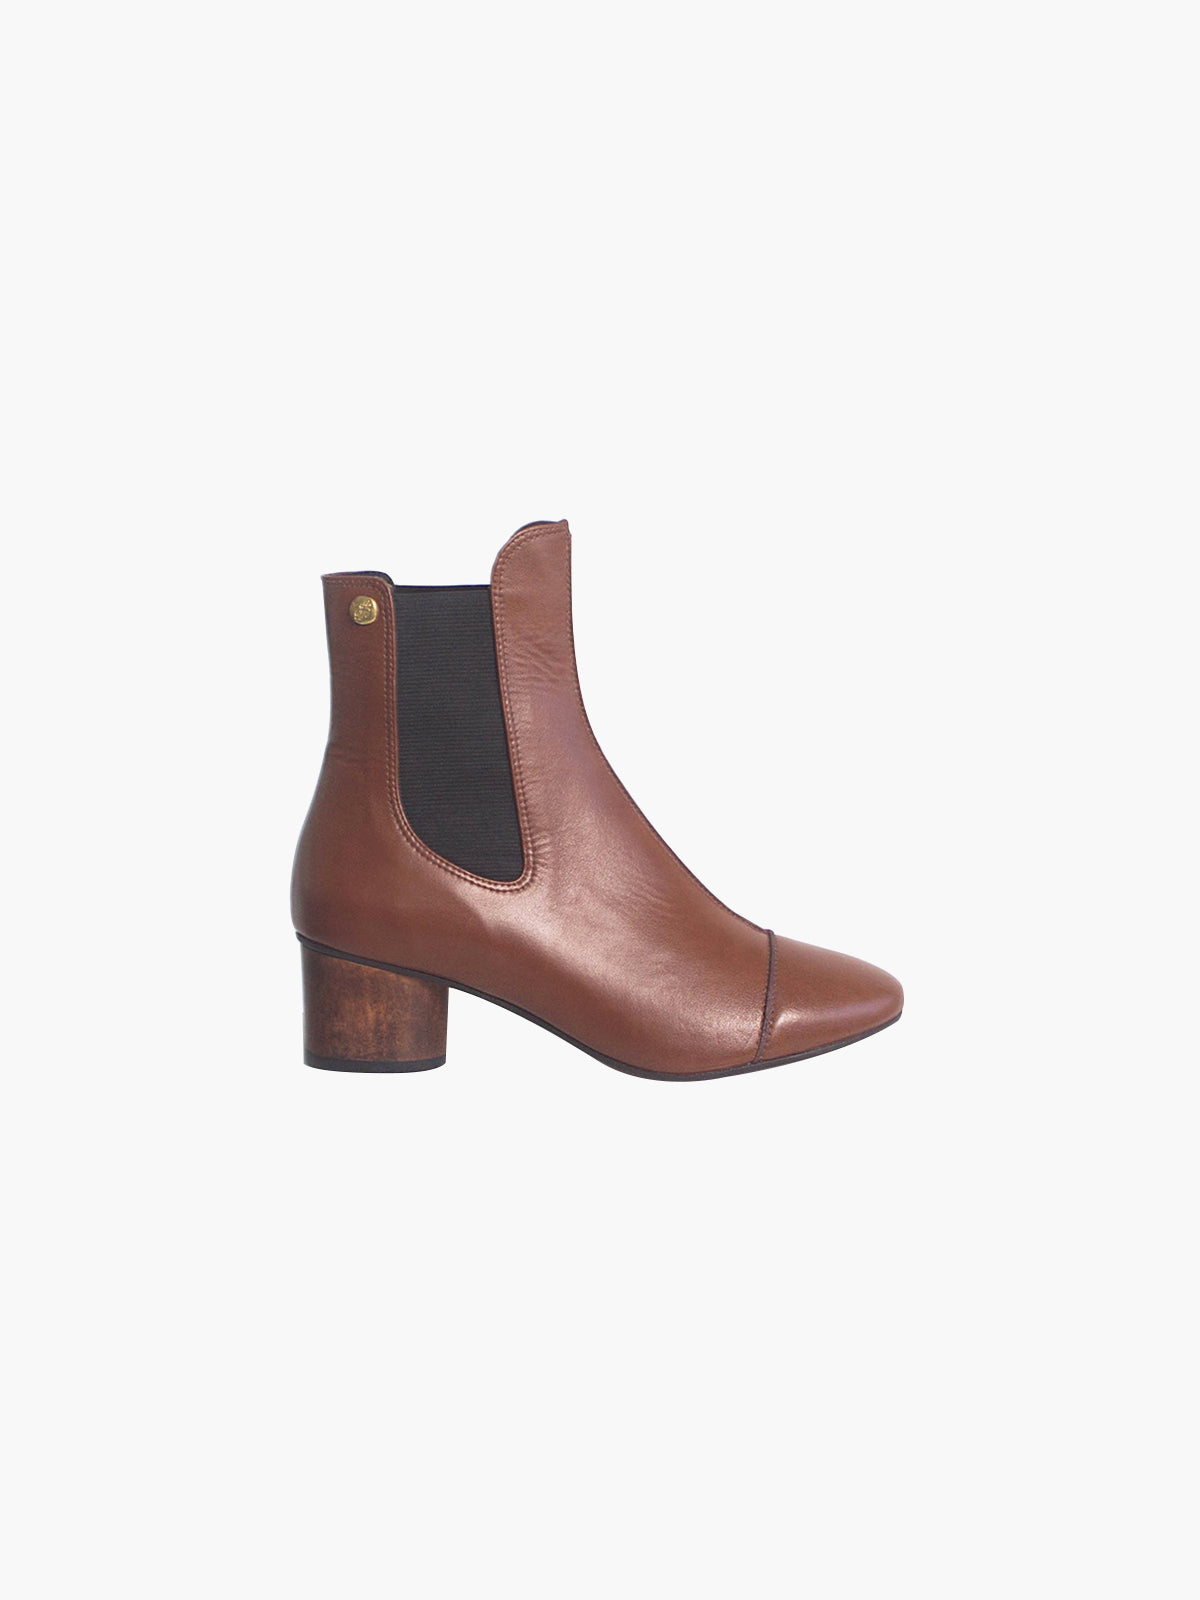 The Patti | Saddle The Patti | Saddle